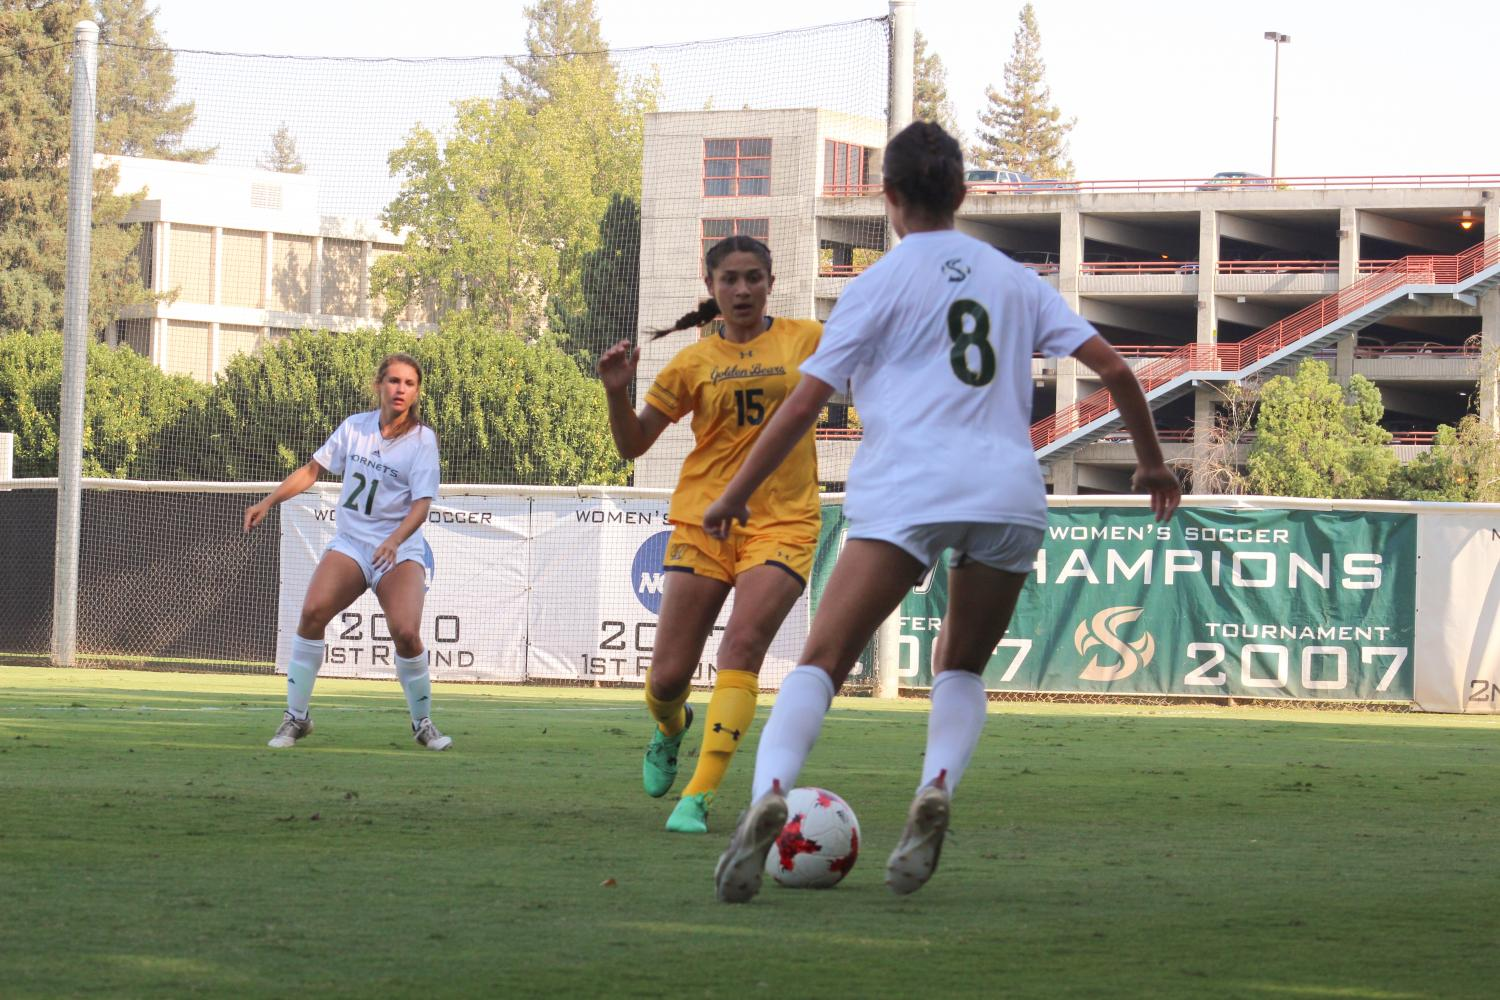 Sacramento+State+senior+forward+Kylee+Smith+attempts+to+dribble+the+ball+past+Cal+Golden+Bears+forward+Miranda+Nild+Friday+at+Hornet+Field.+Sac+State+lost+to+Cal+2-1+in+double+overtime.